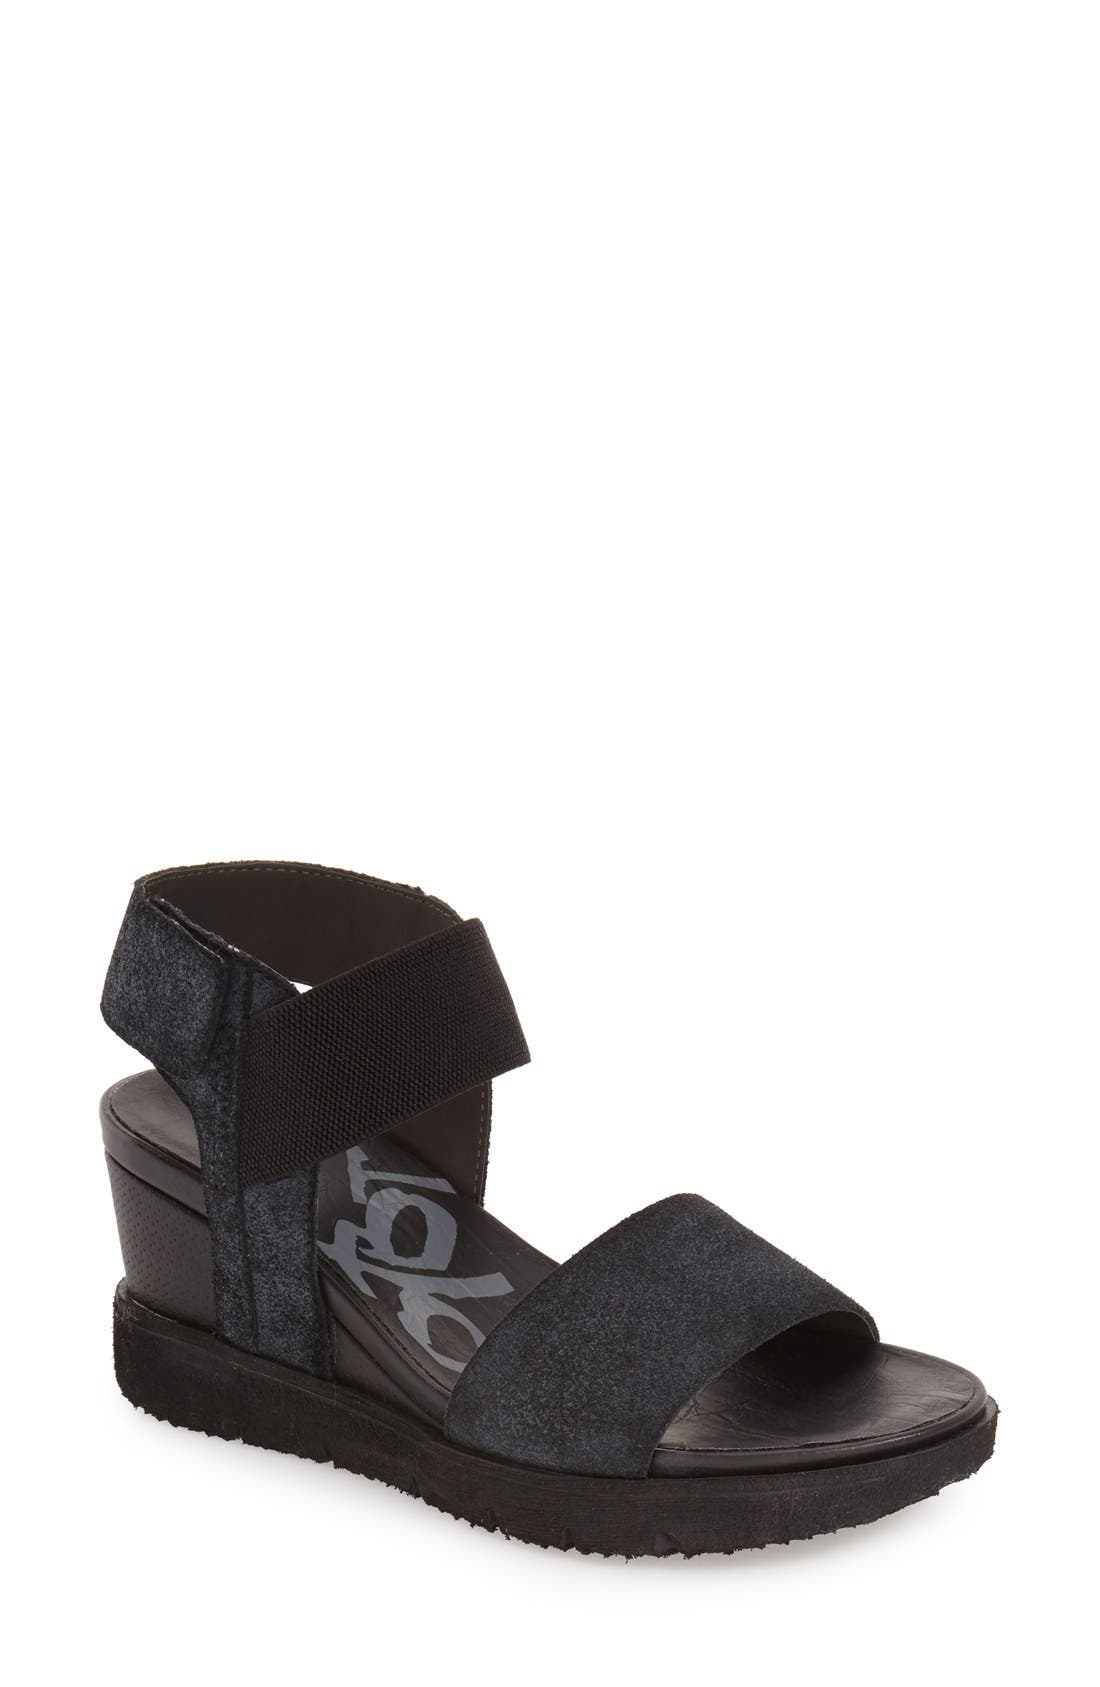 OTBT 'Cosmos' Wedge Sandal (Women)